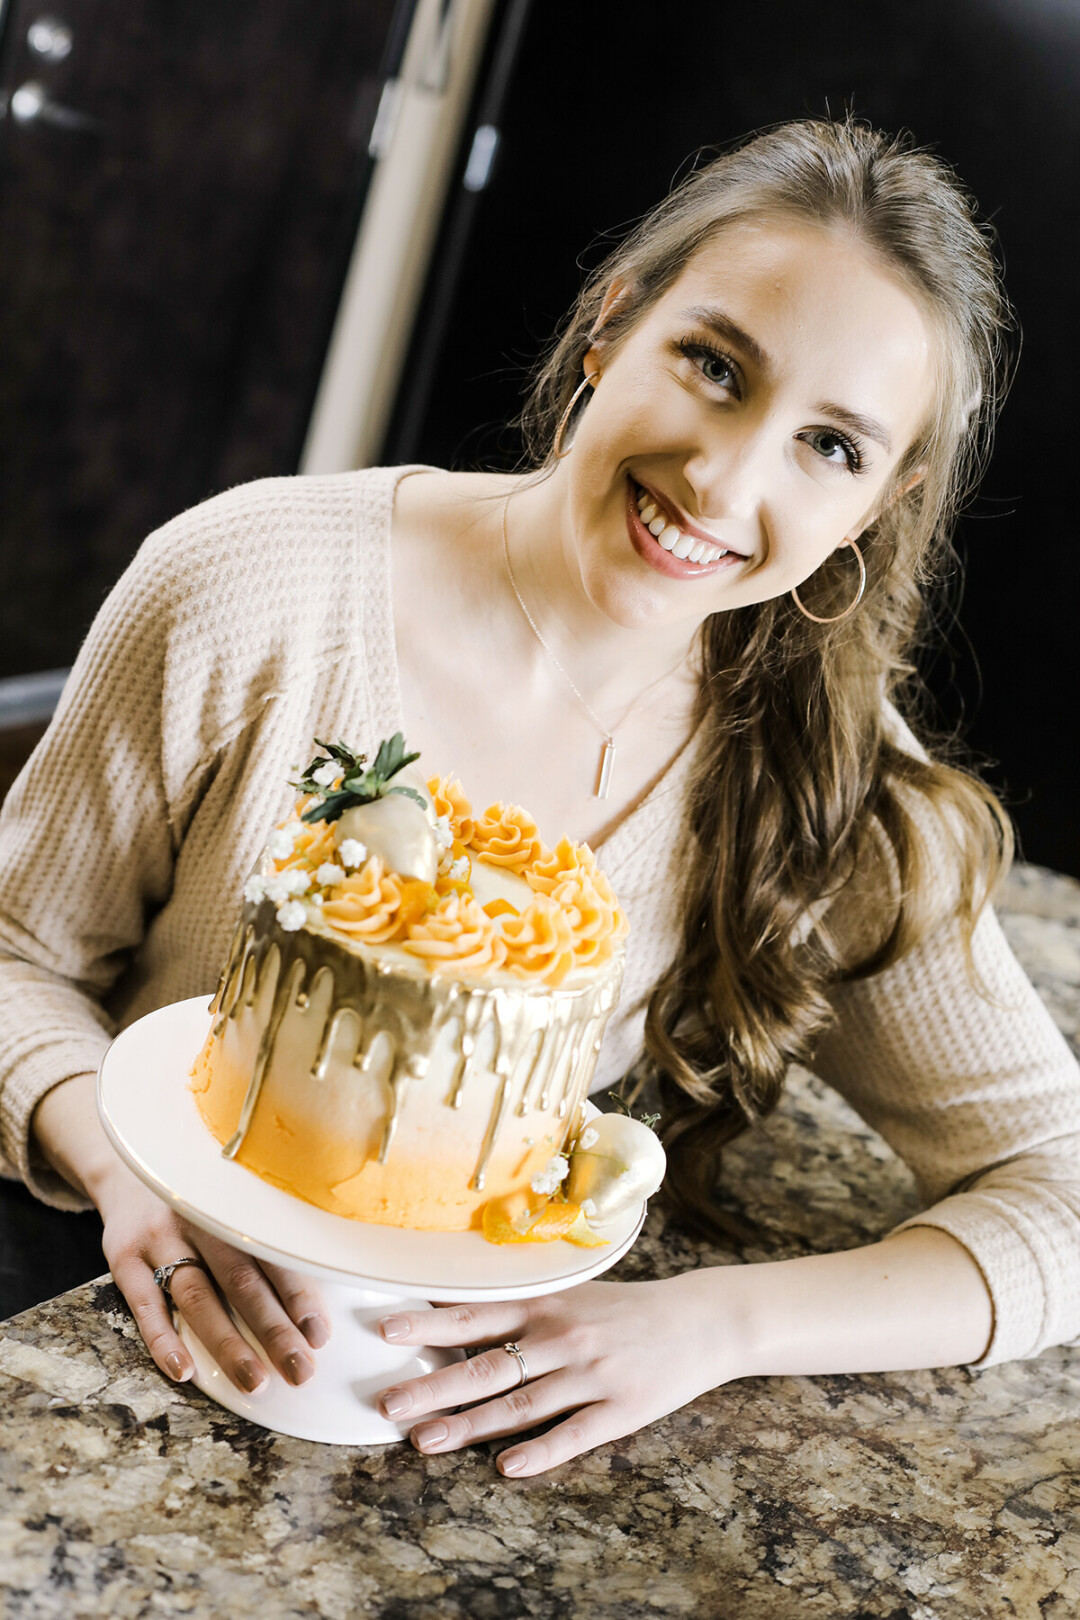 UW-Eau Claire student Michayla Thielen creates amazing baked goods like this orange dreamsicle cake.